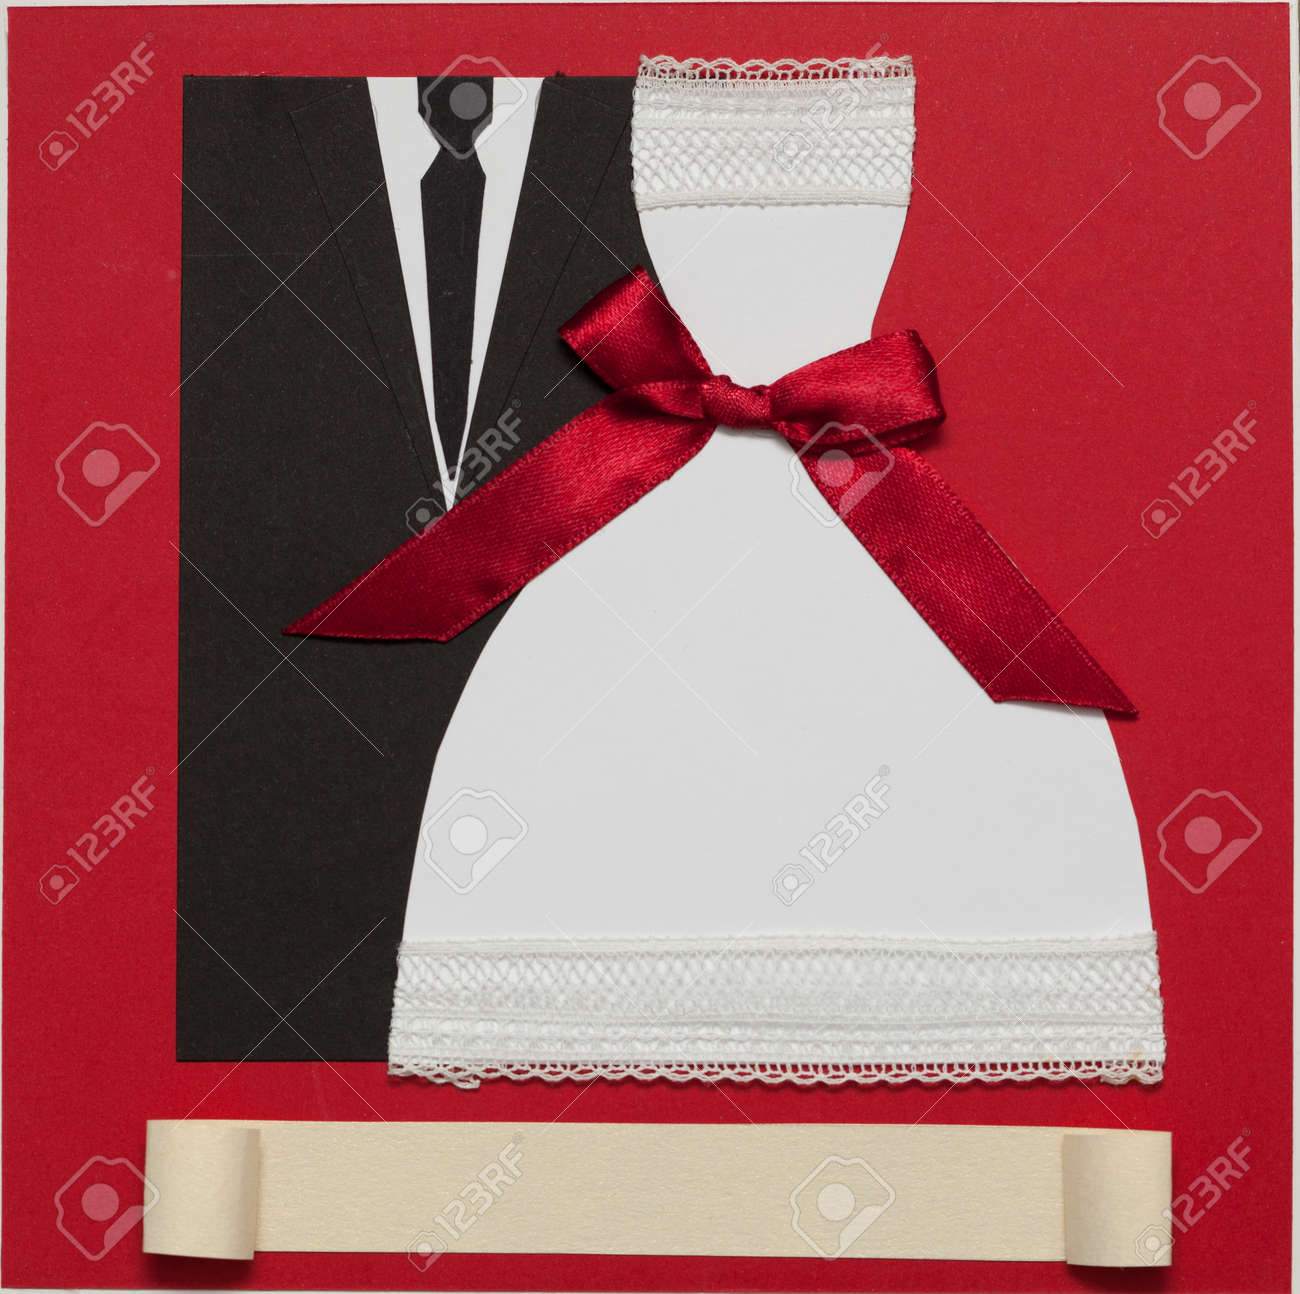 Wedding Invitation Card Paper Cutting Design Papercraft Elegant ...